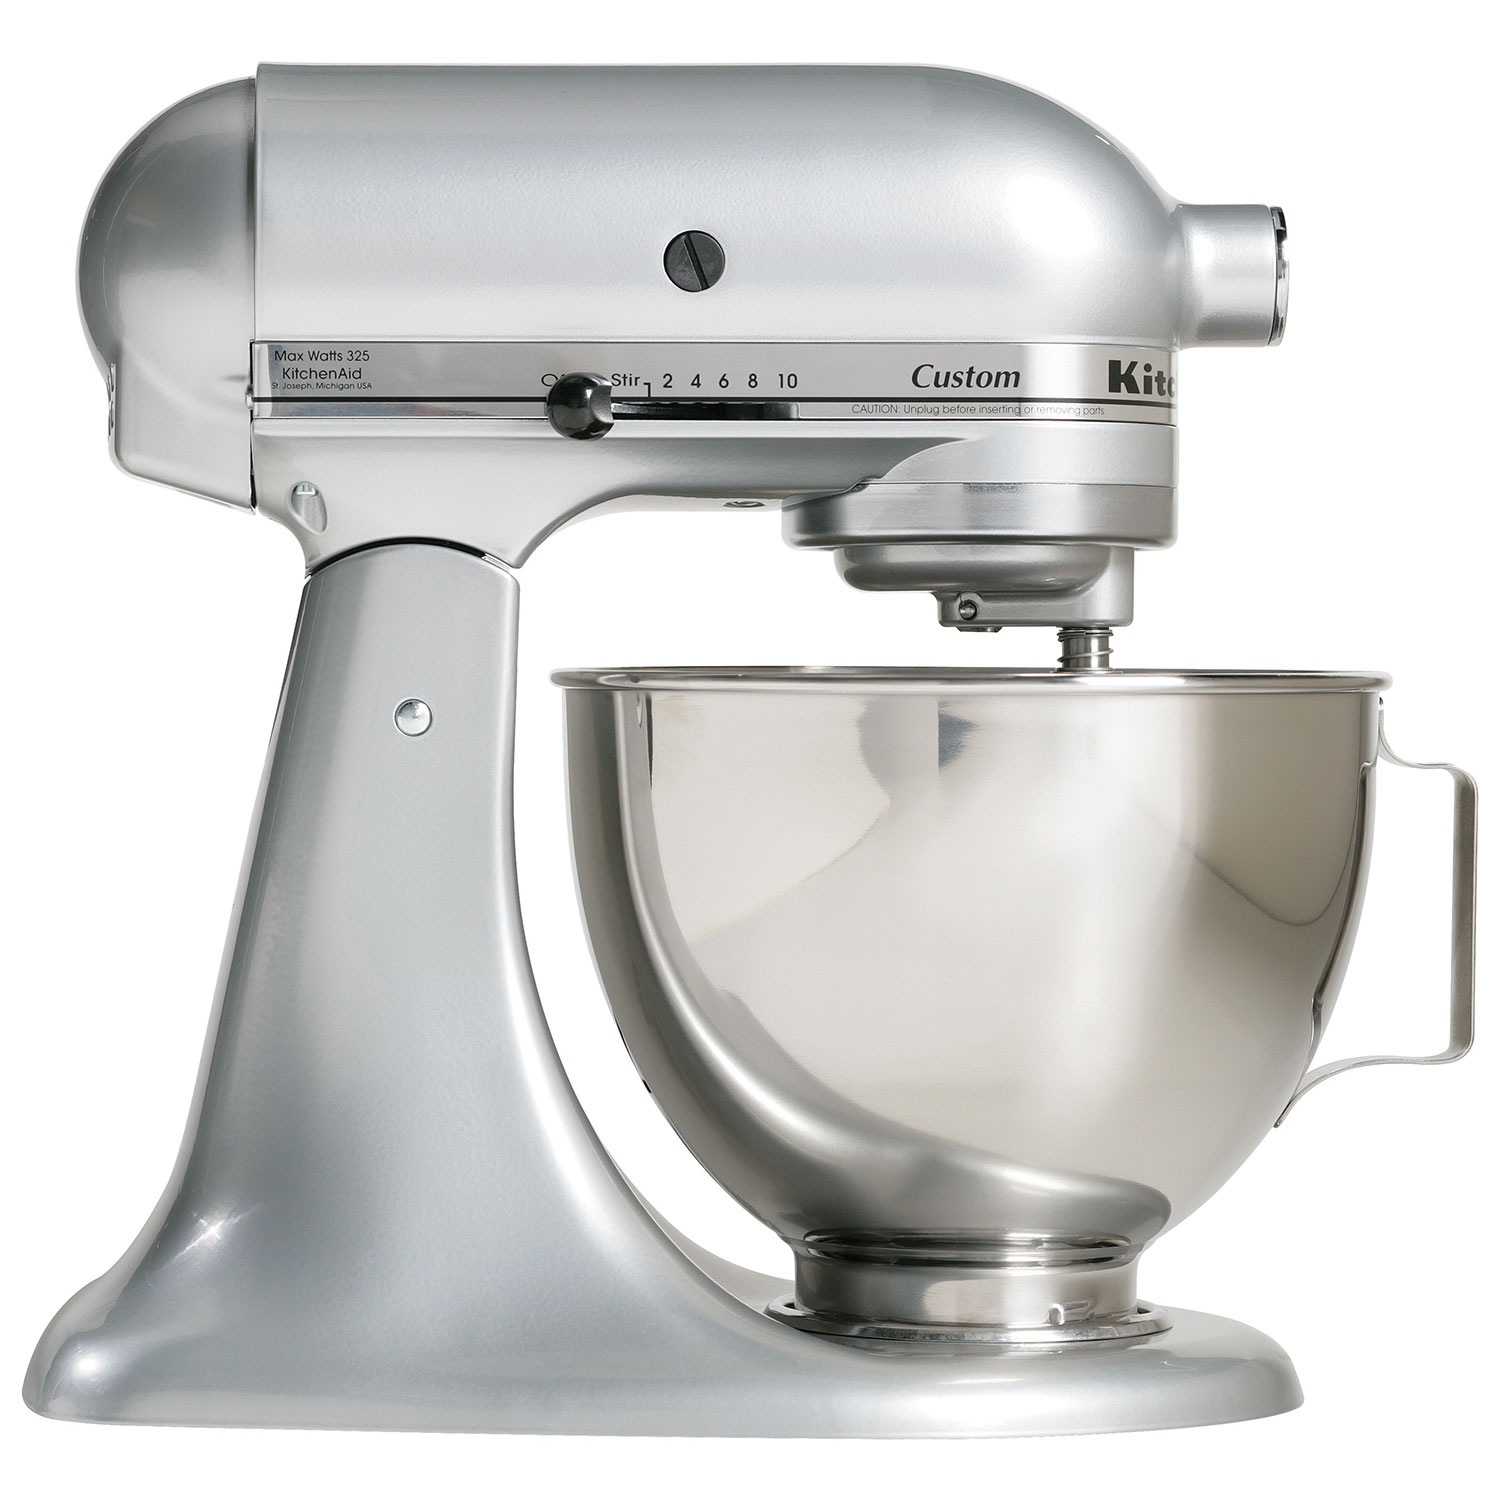 Beau KitchenAid Custom Stand Mixer   4.5Qt   325 Watt   Metallic Chrome : Stand  Mixers   Best Buy Canada